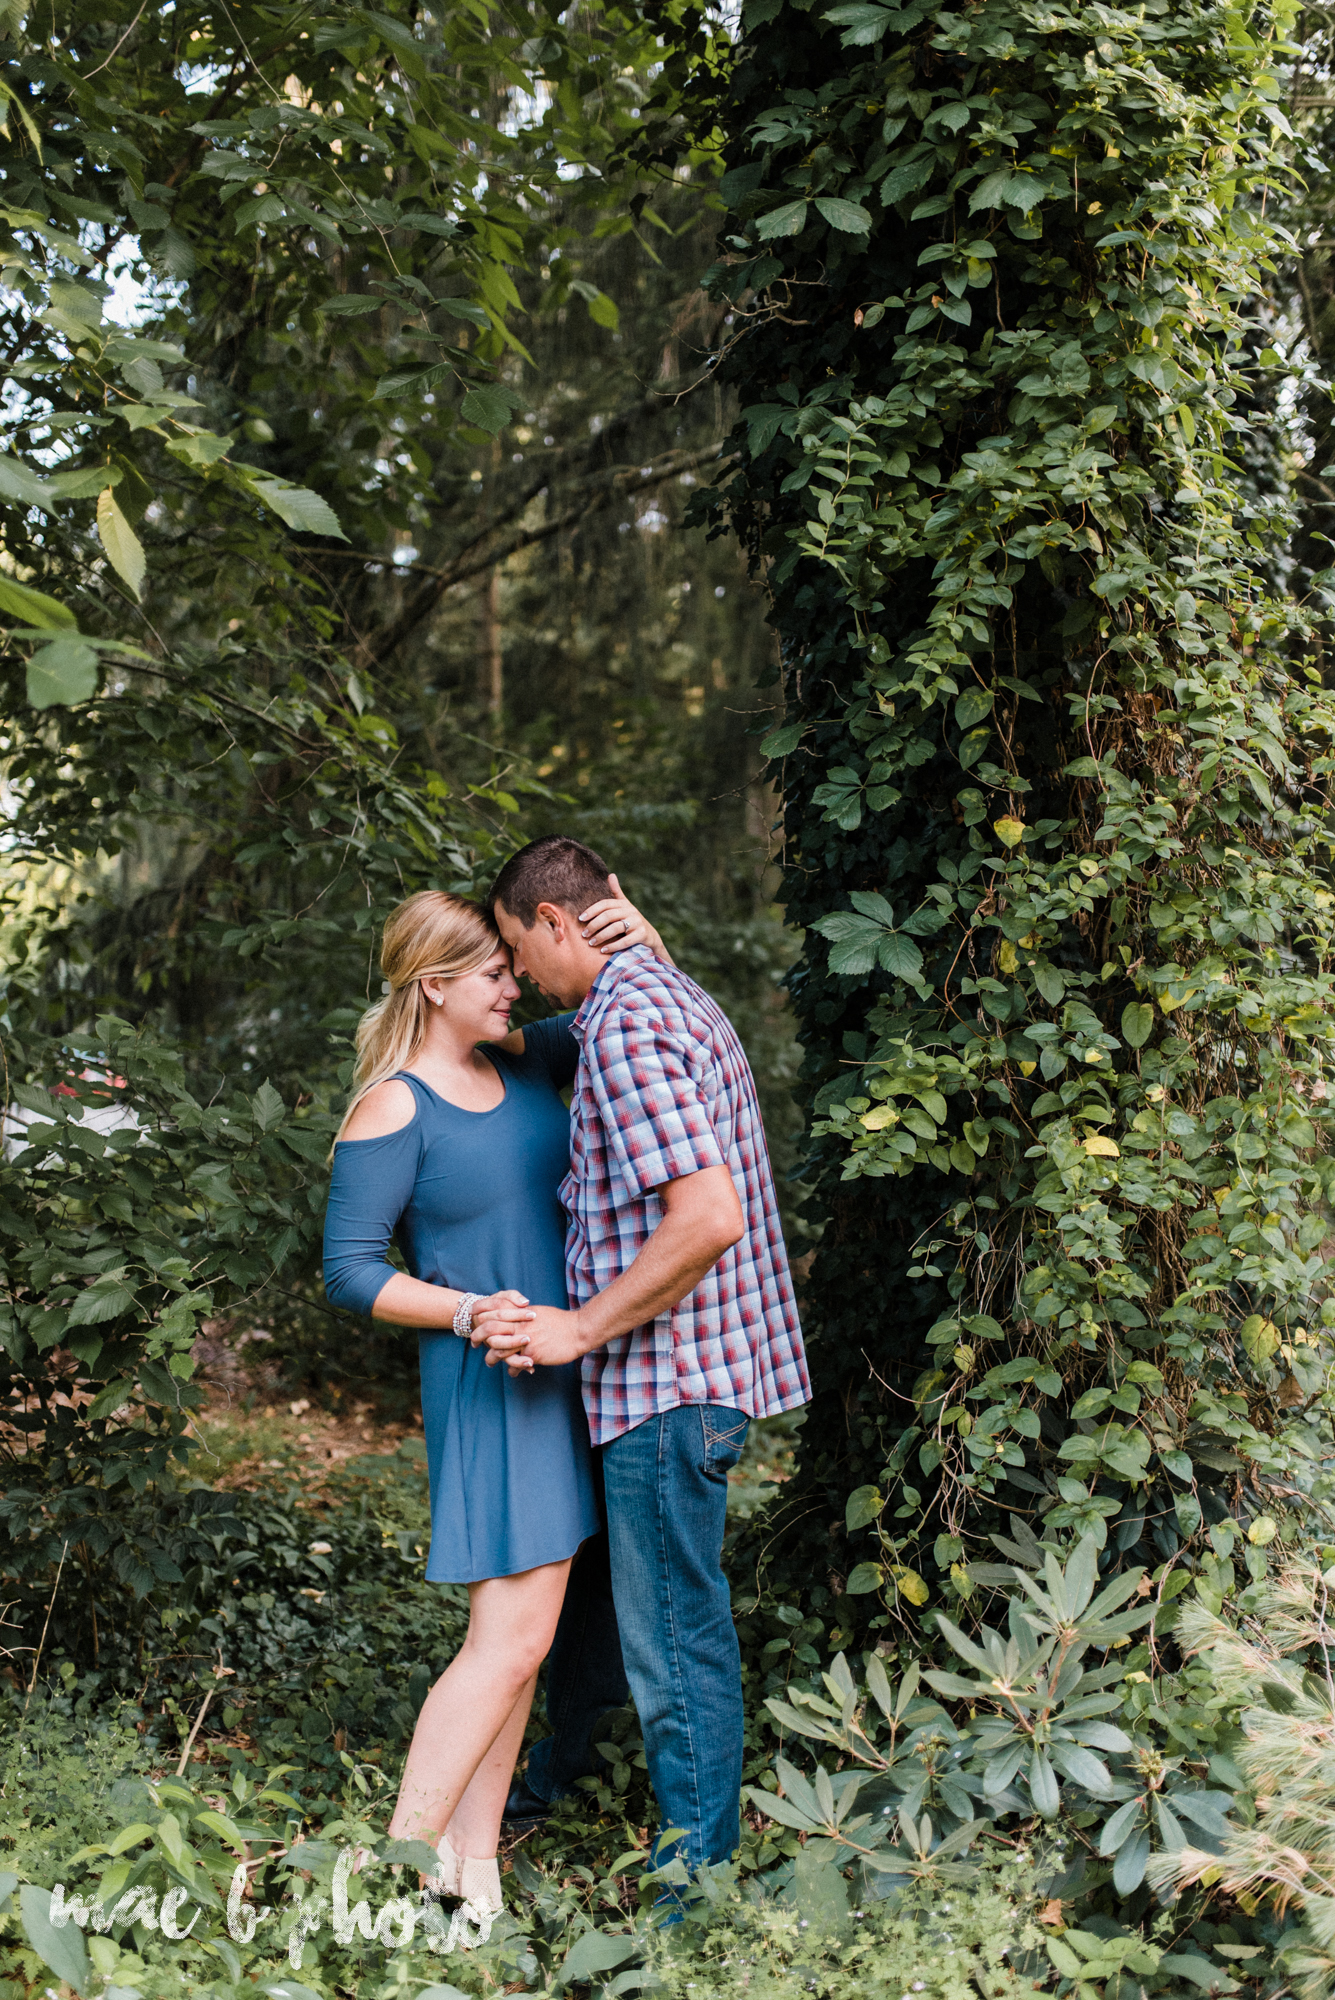 becca and rich's woodsy summer engagement session at ford nature center in mill creek park in youngstown ohio photographed by cleveland wedding photographer mae b photo-22.jpg